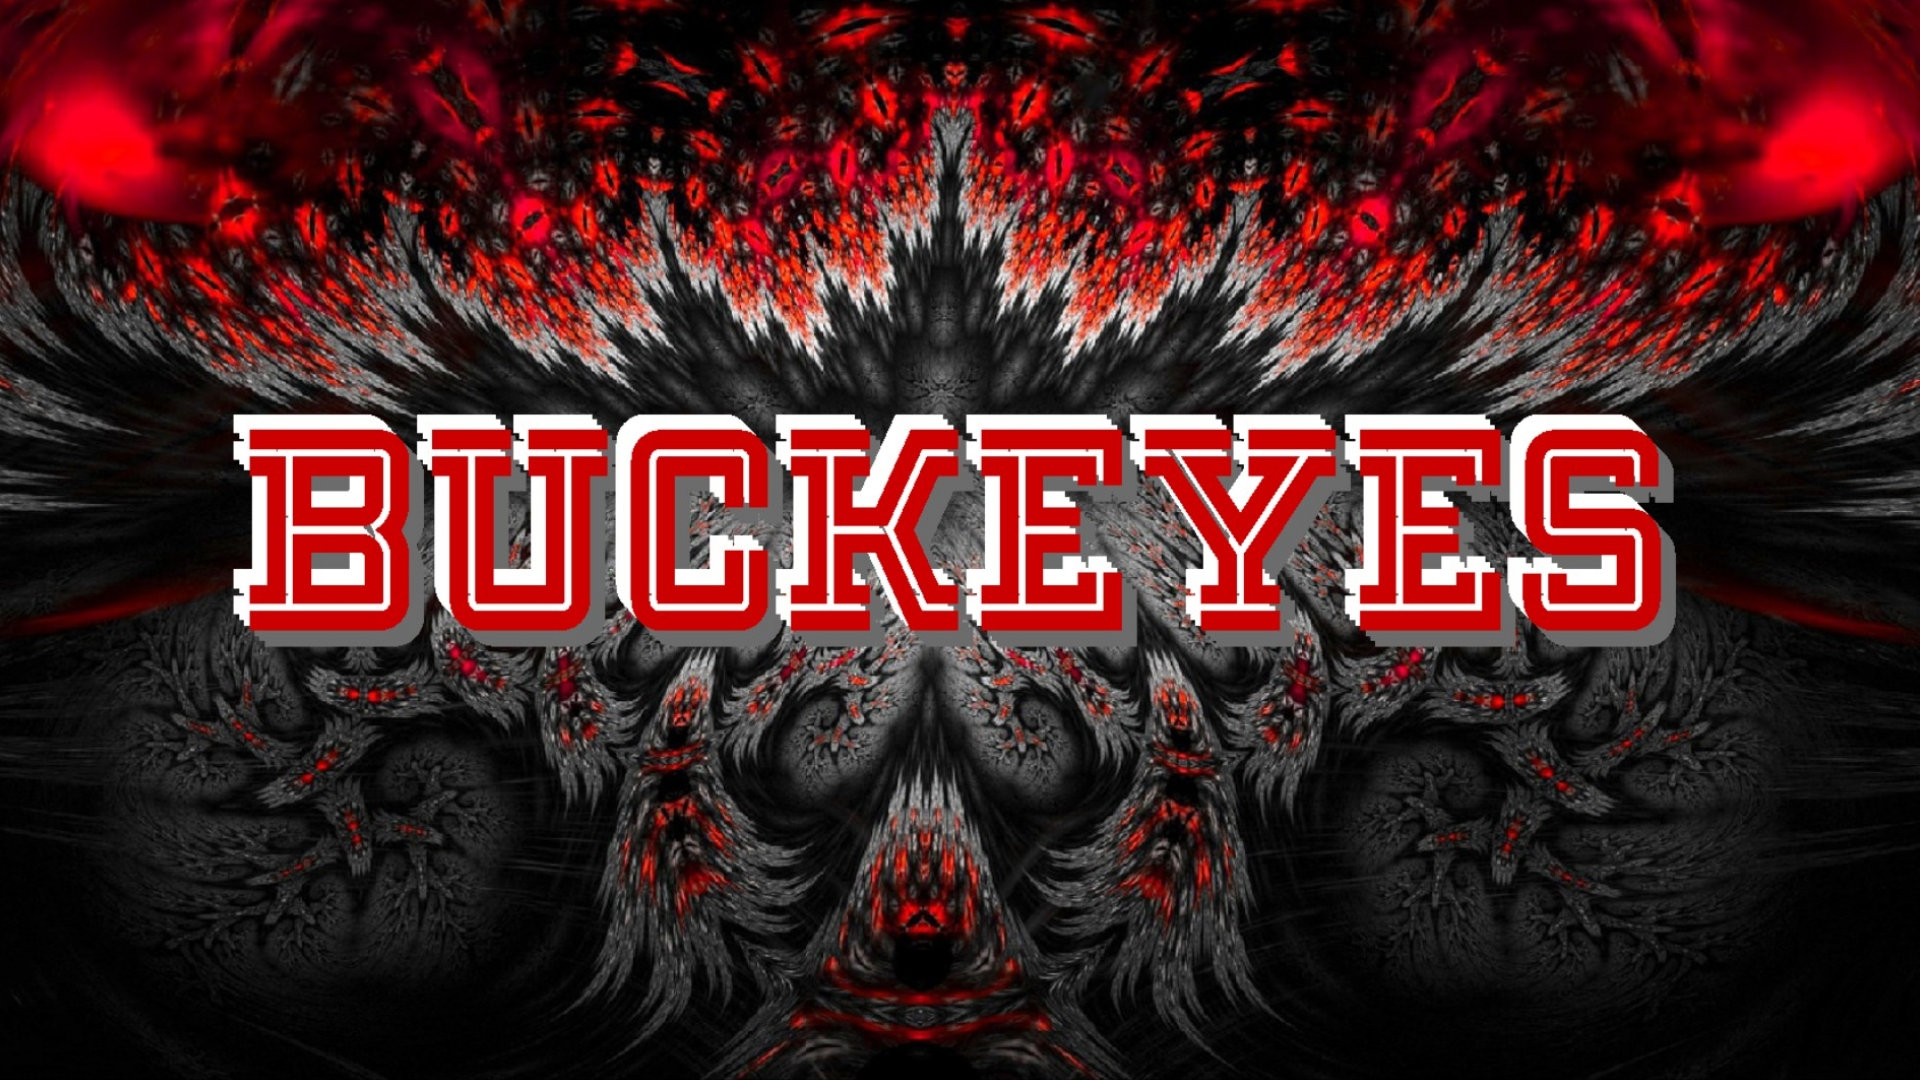 ohio state buckeyes images buckeyes on an abstract hd wallpaper and